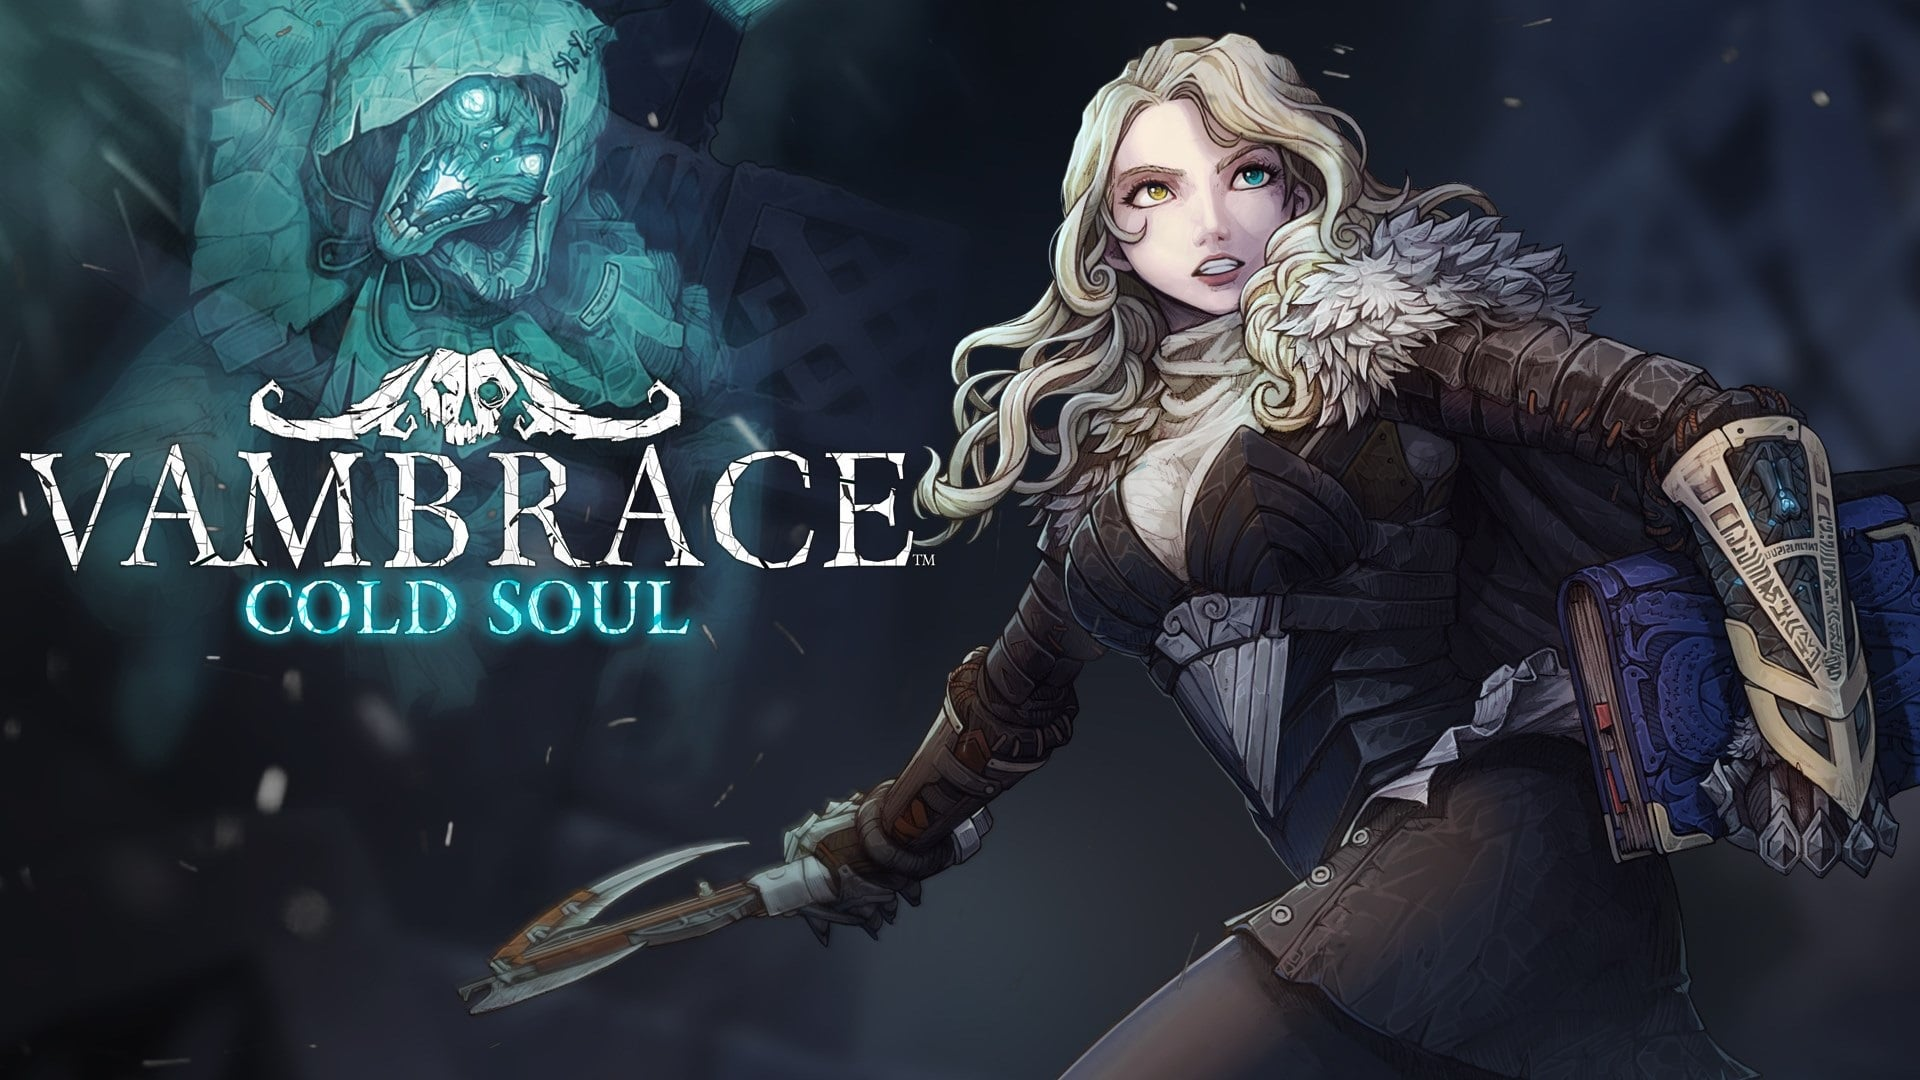 Vambrace: successes of the cold soul